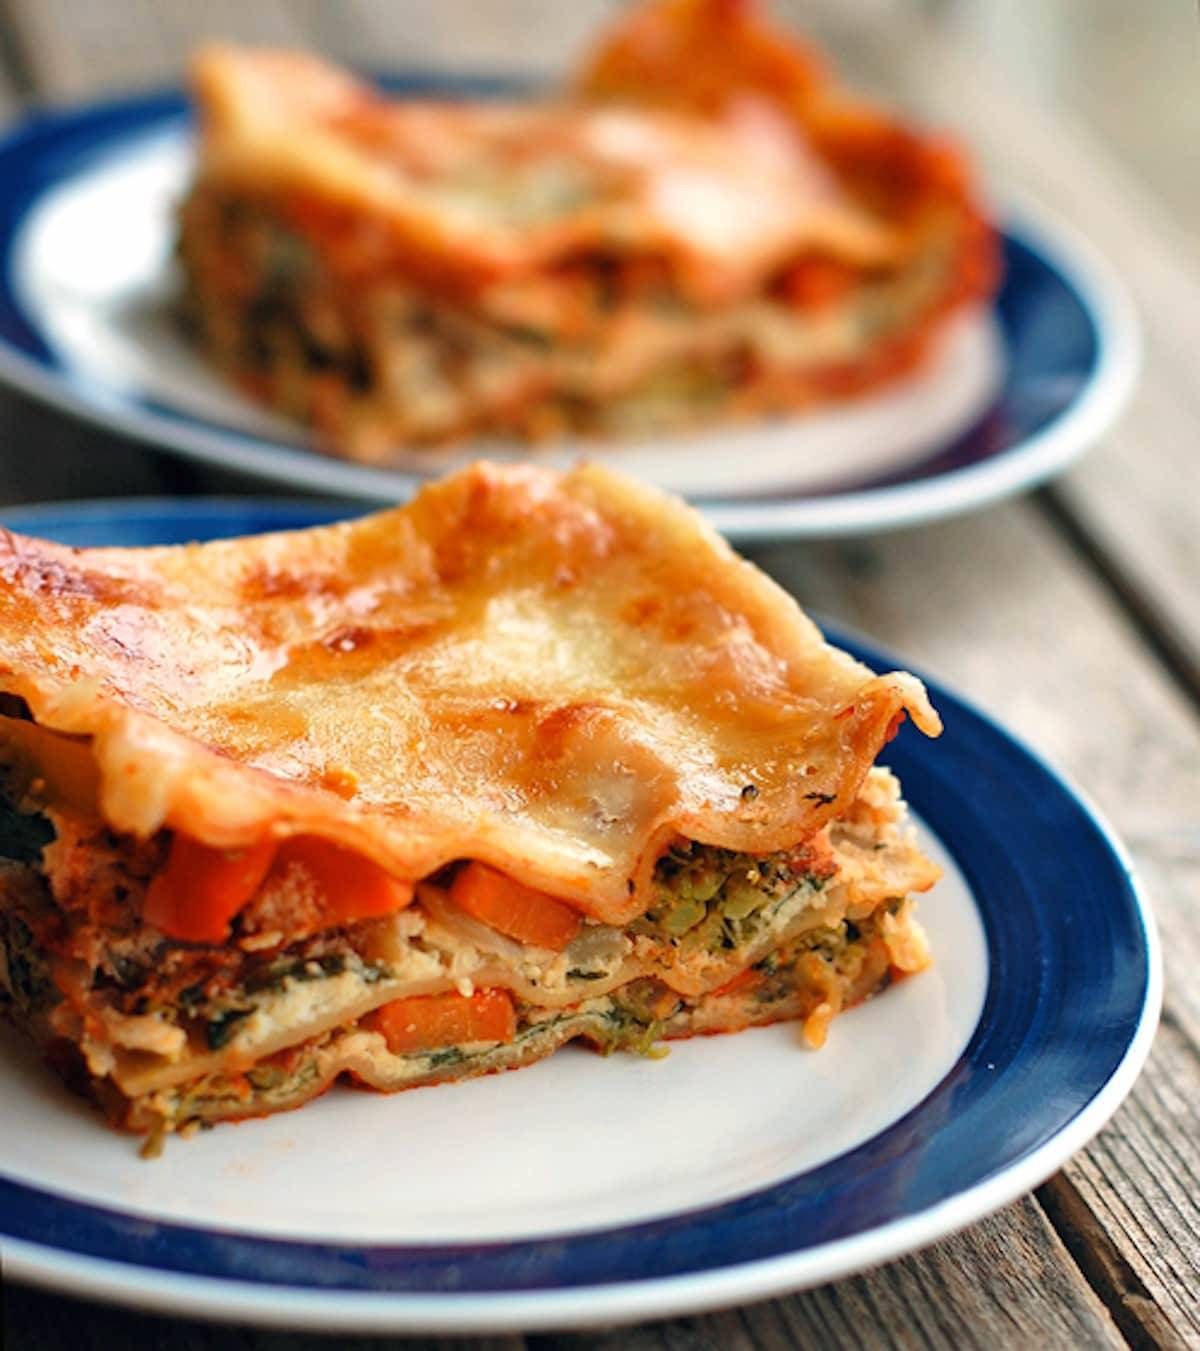 Veggie lasagna full of chopped broccoli, carrots, cauliflower, spinach, ricotta cheese, and tomato sauce on a plate.